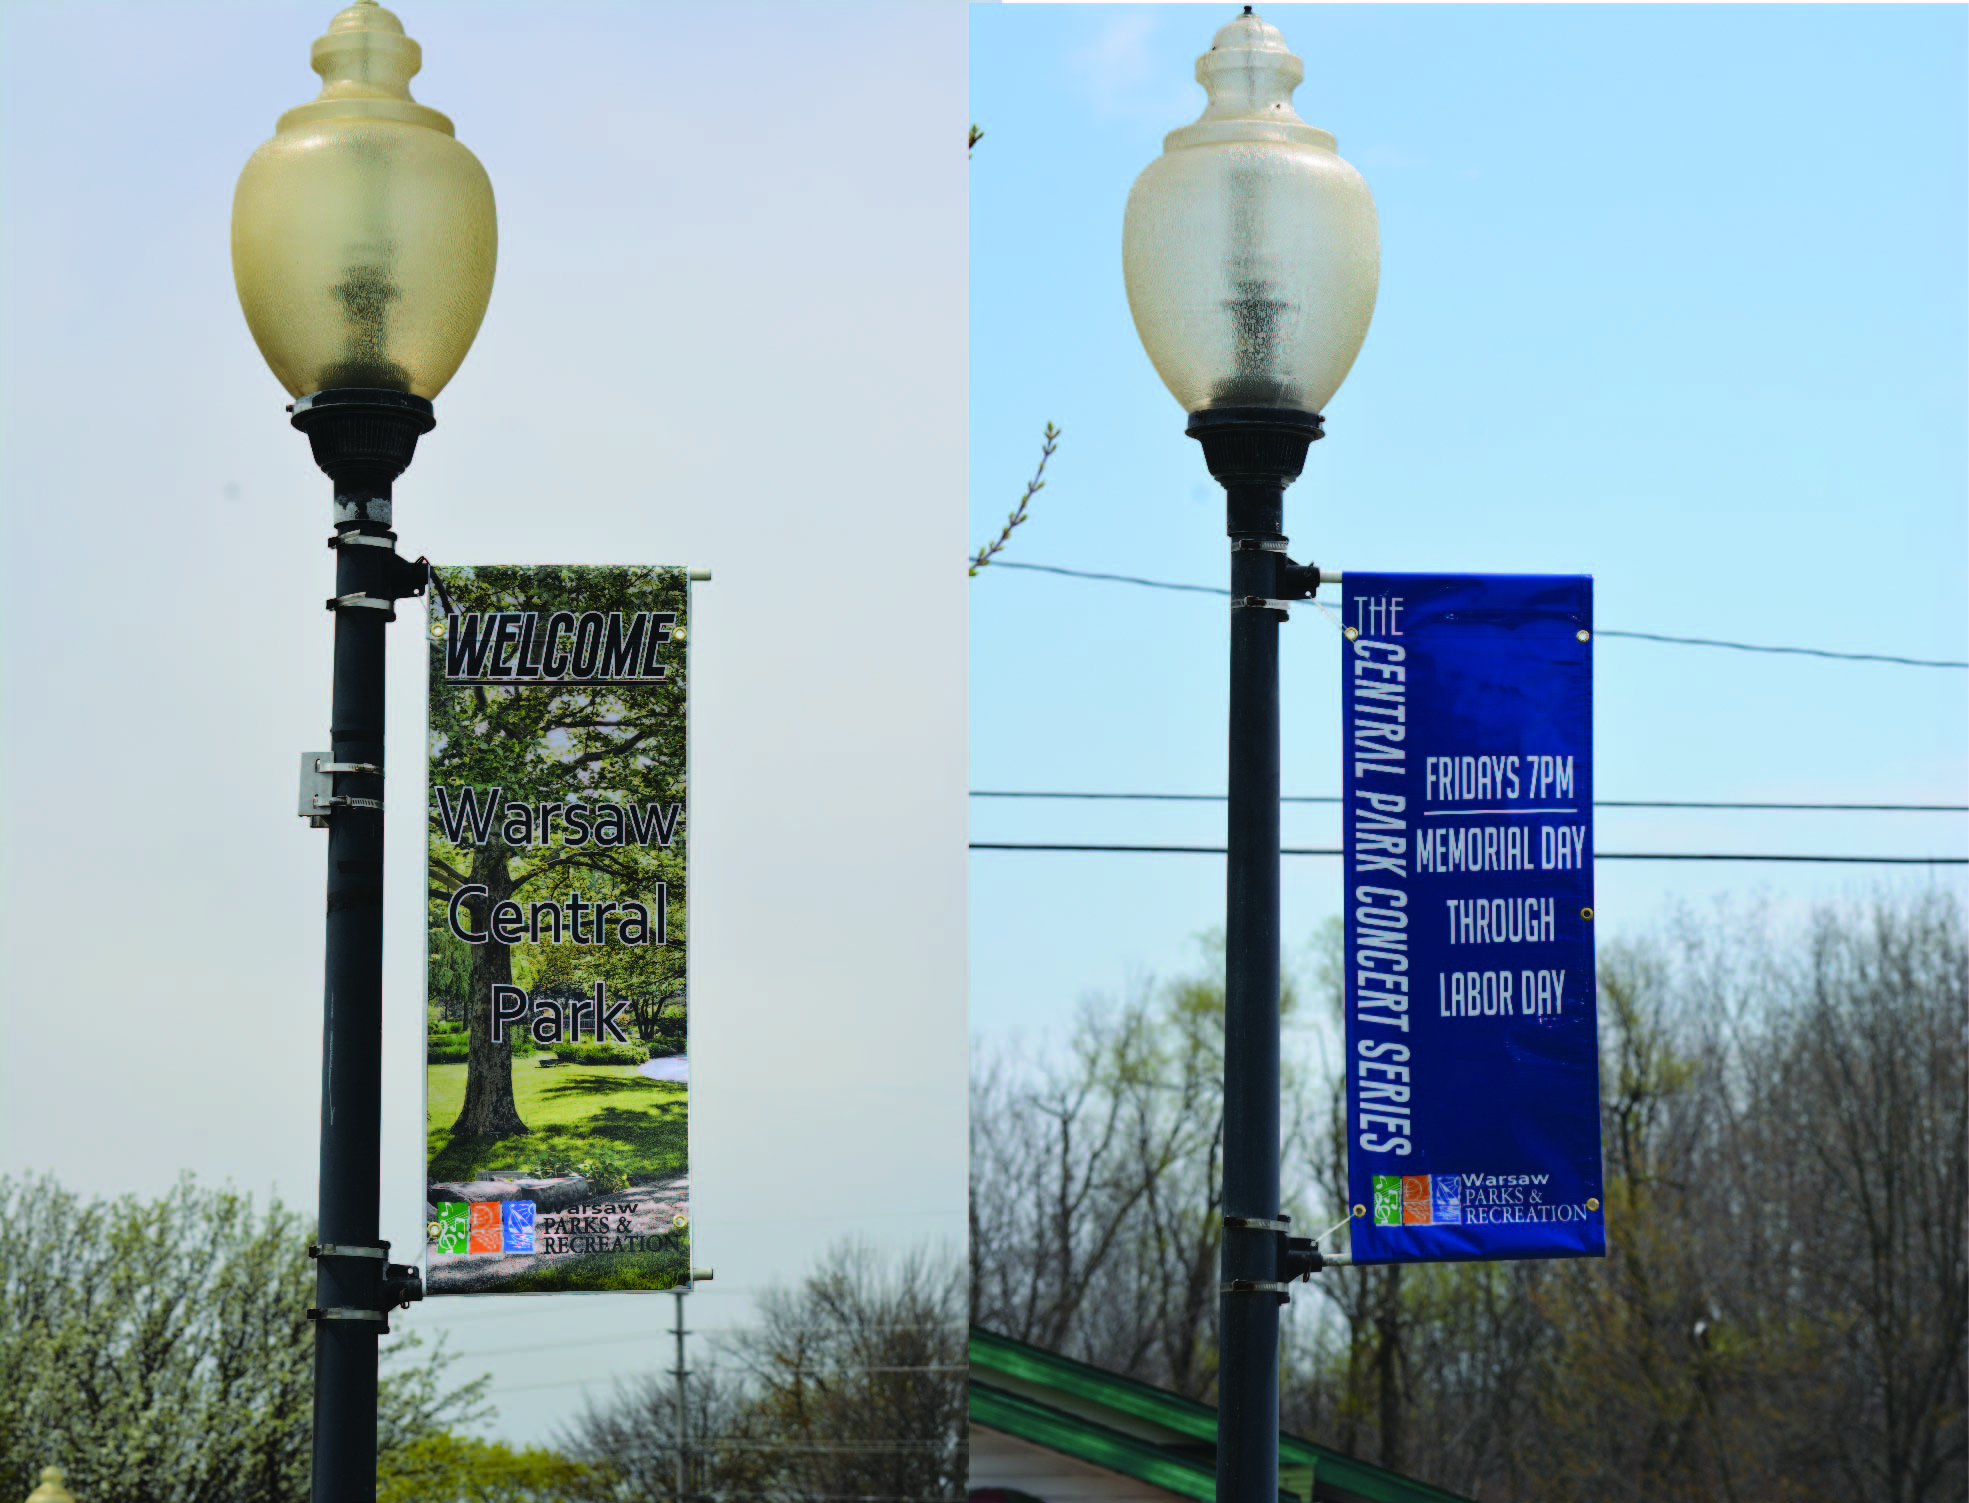 Warsaw Parks & Recreation Banners - Combined.jpg